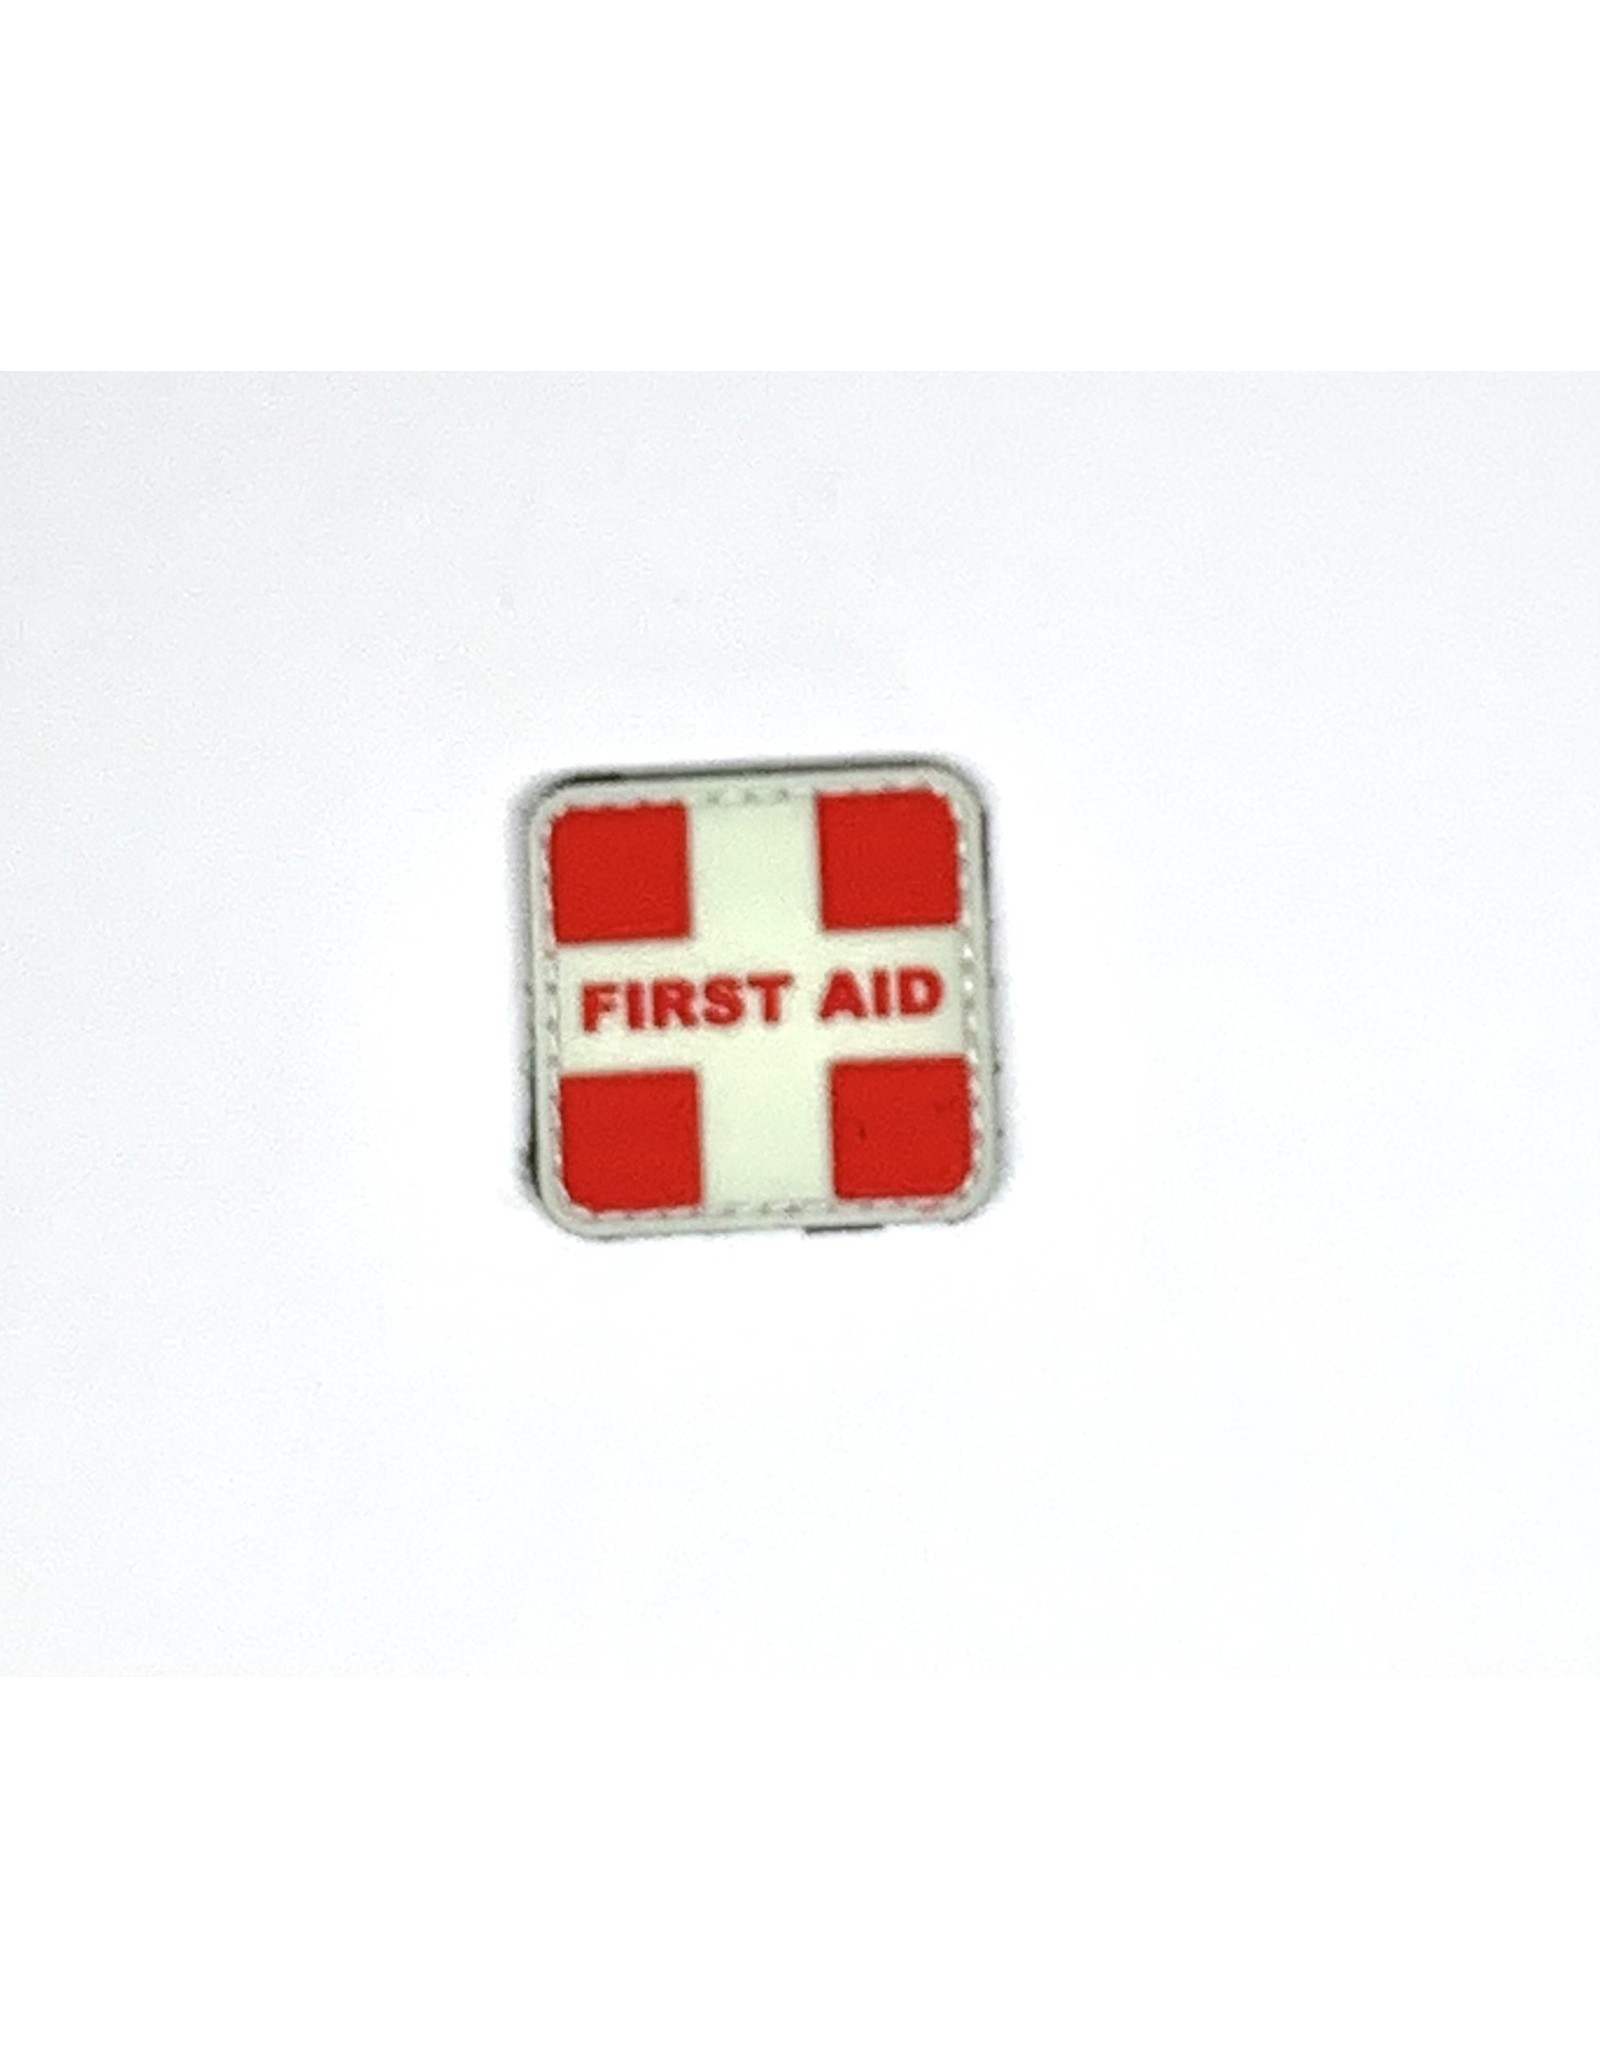 TIC Patch - FIRST AID